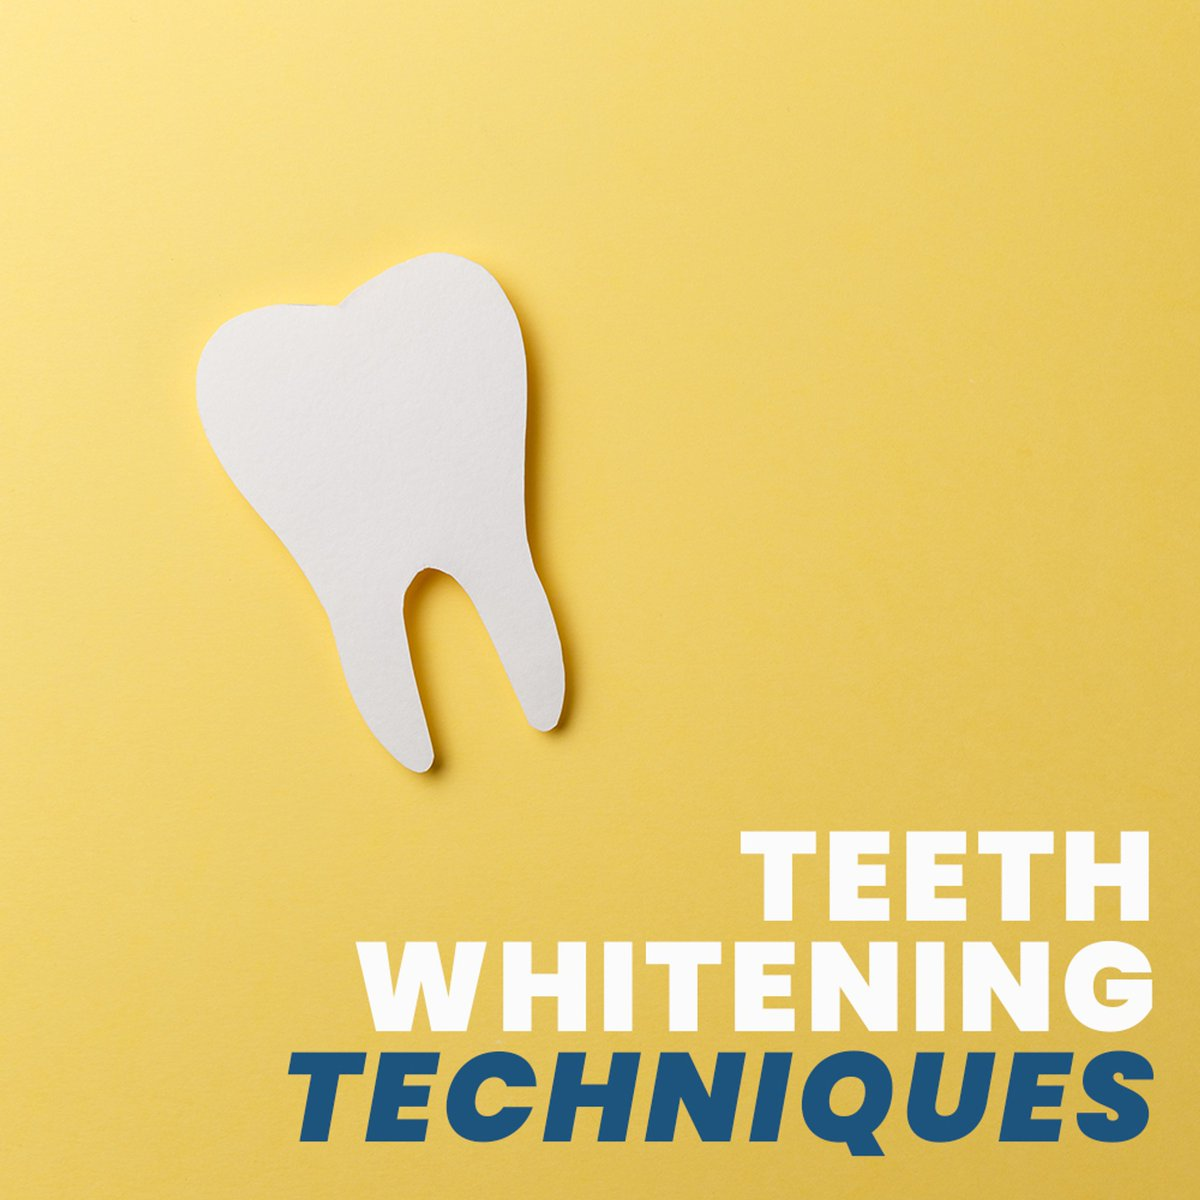 Are your teeth showing the signs of your coffee habit? Many people want a whiter smile, but are unsure of which #whitening technique to use.  Contact us and we can get your smile the bright, white shade you're looking for.  #teethwhitening #cosmeticdentistry #dentistrypic.twitter.com/OI862FpNSI